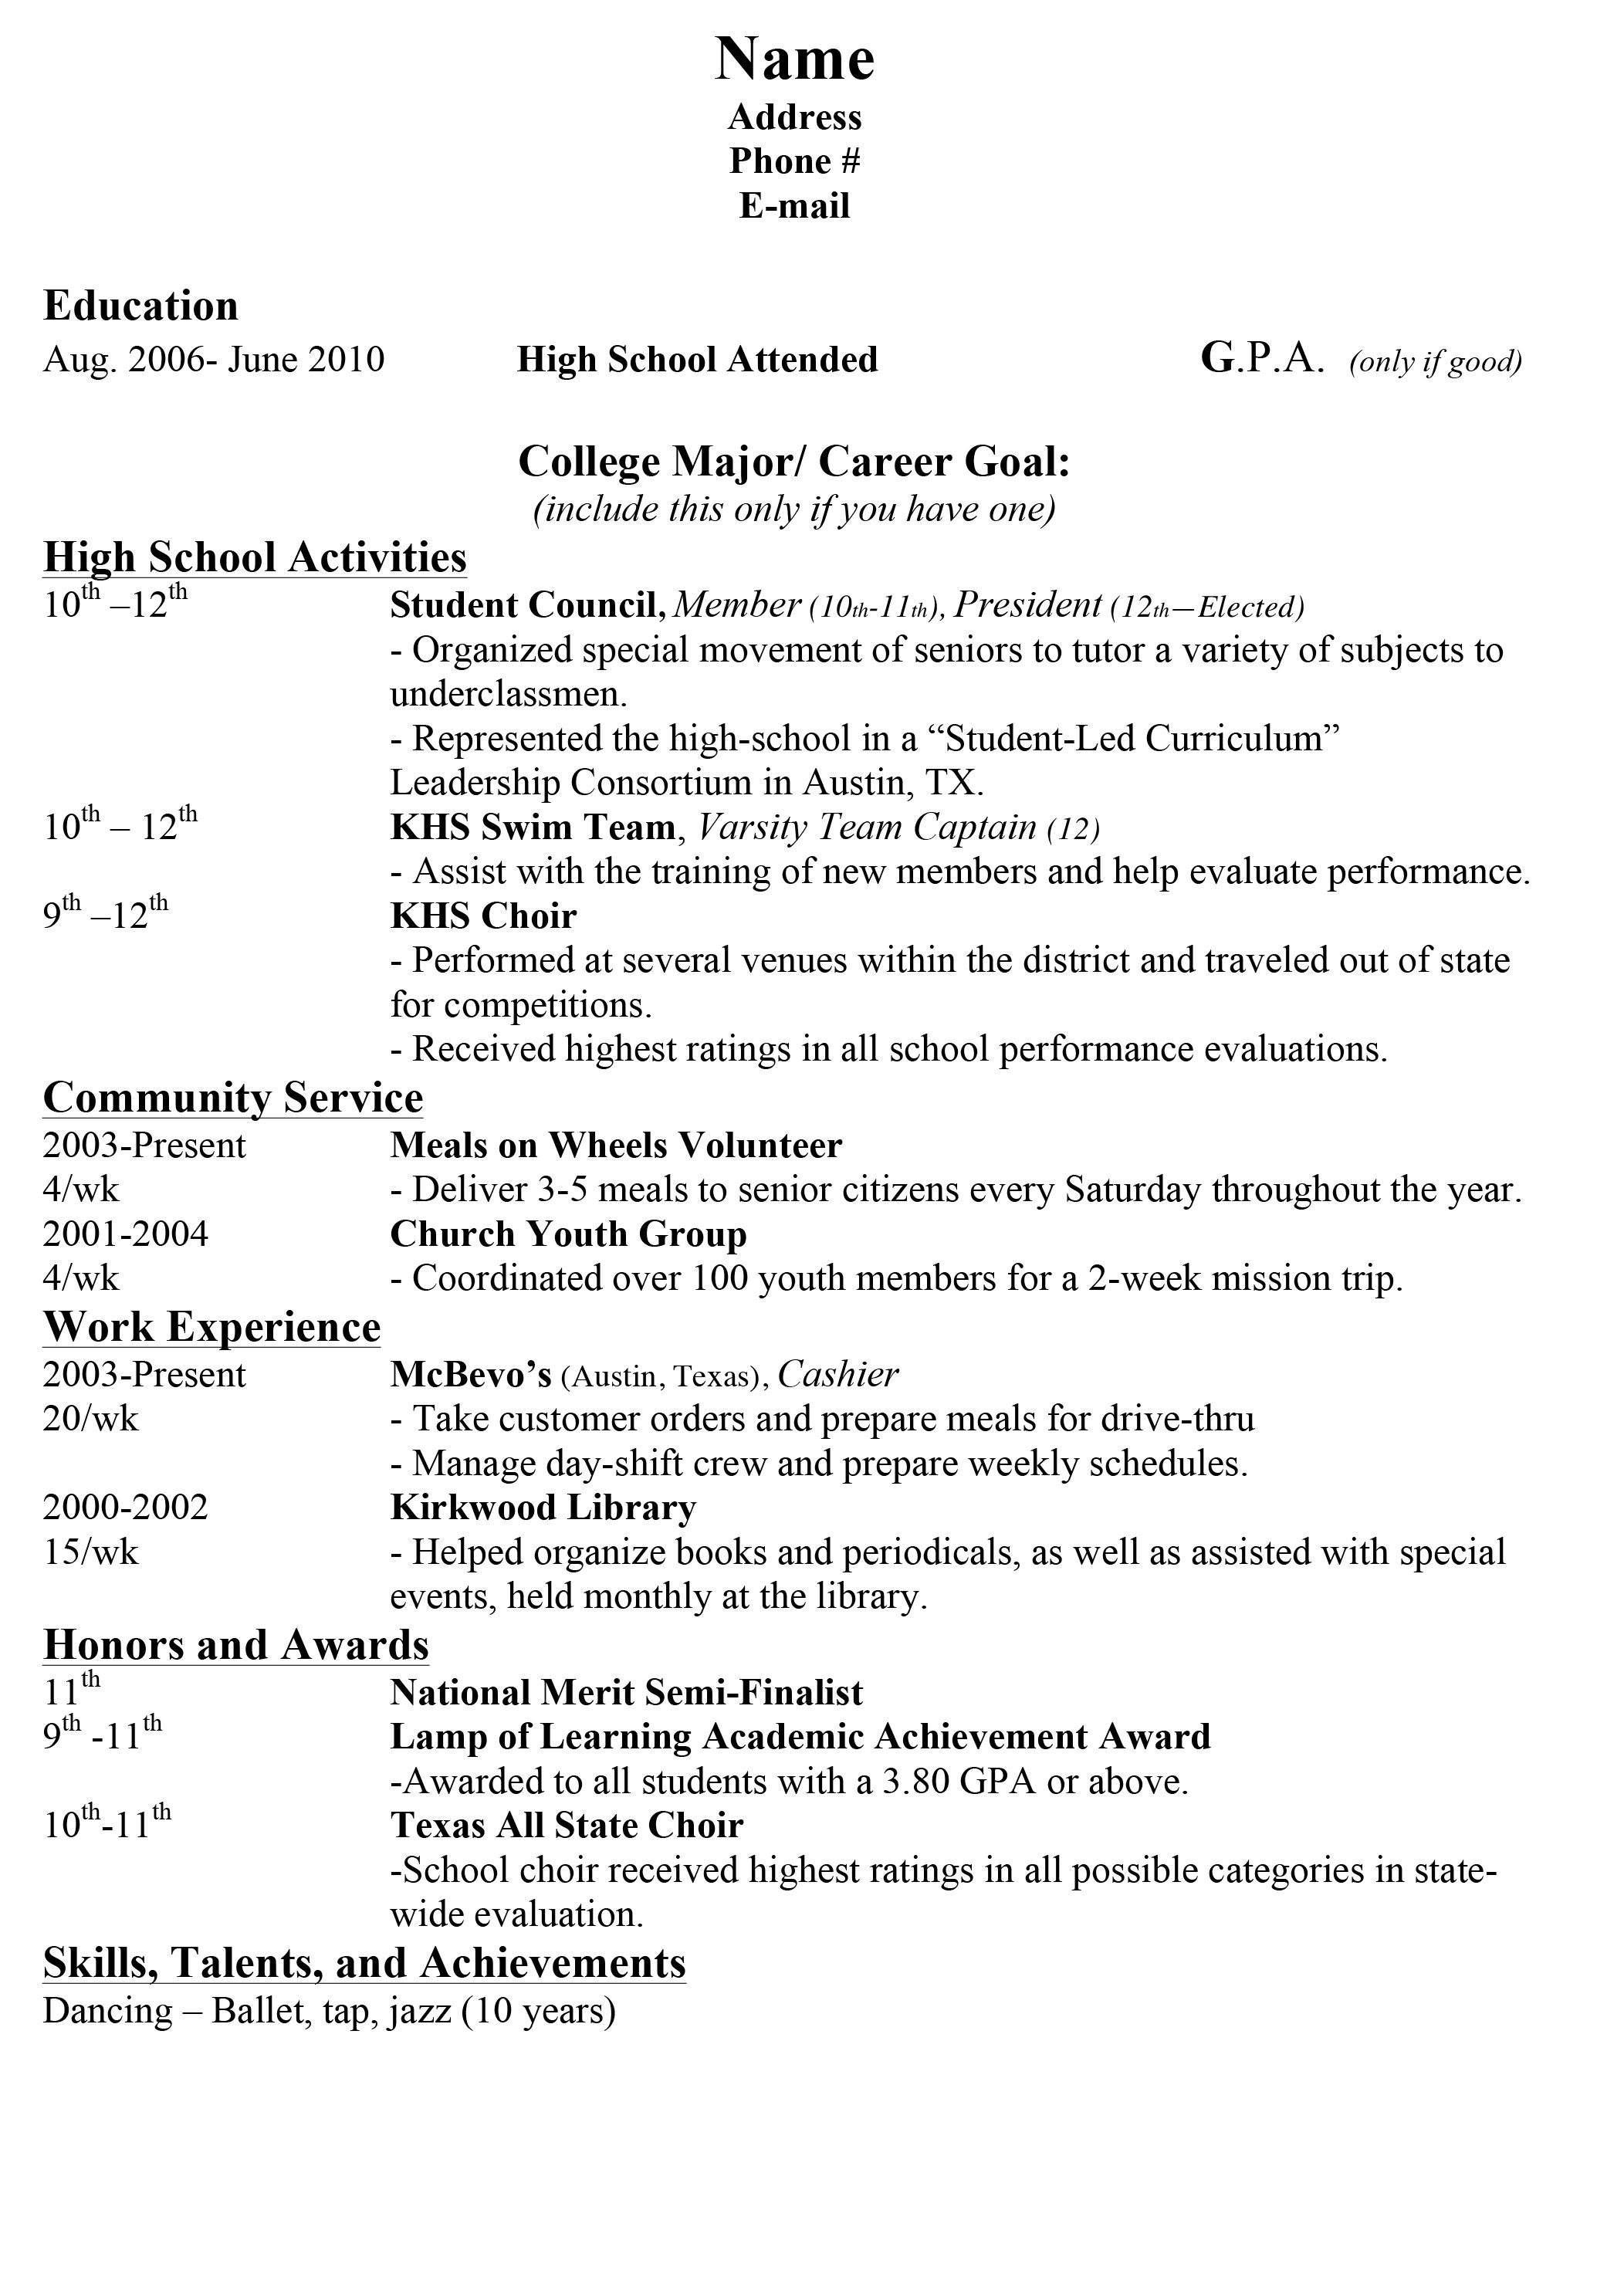 dissertation sample resume with no work experience college graduate